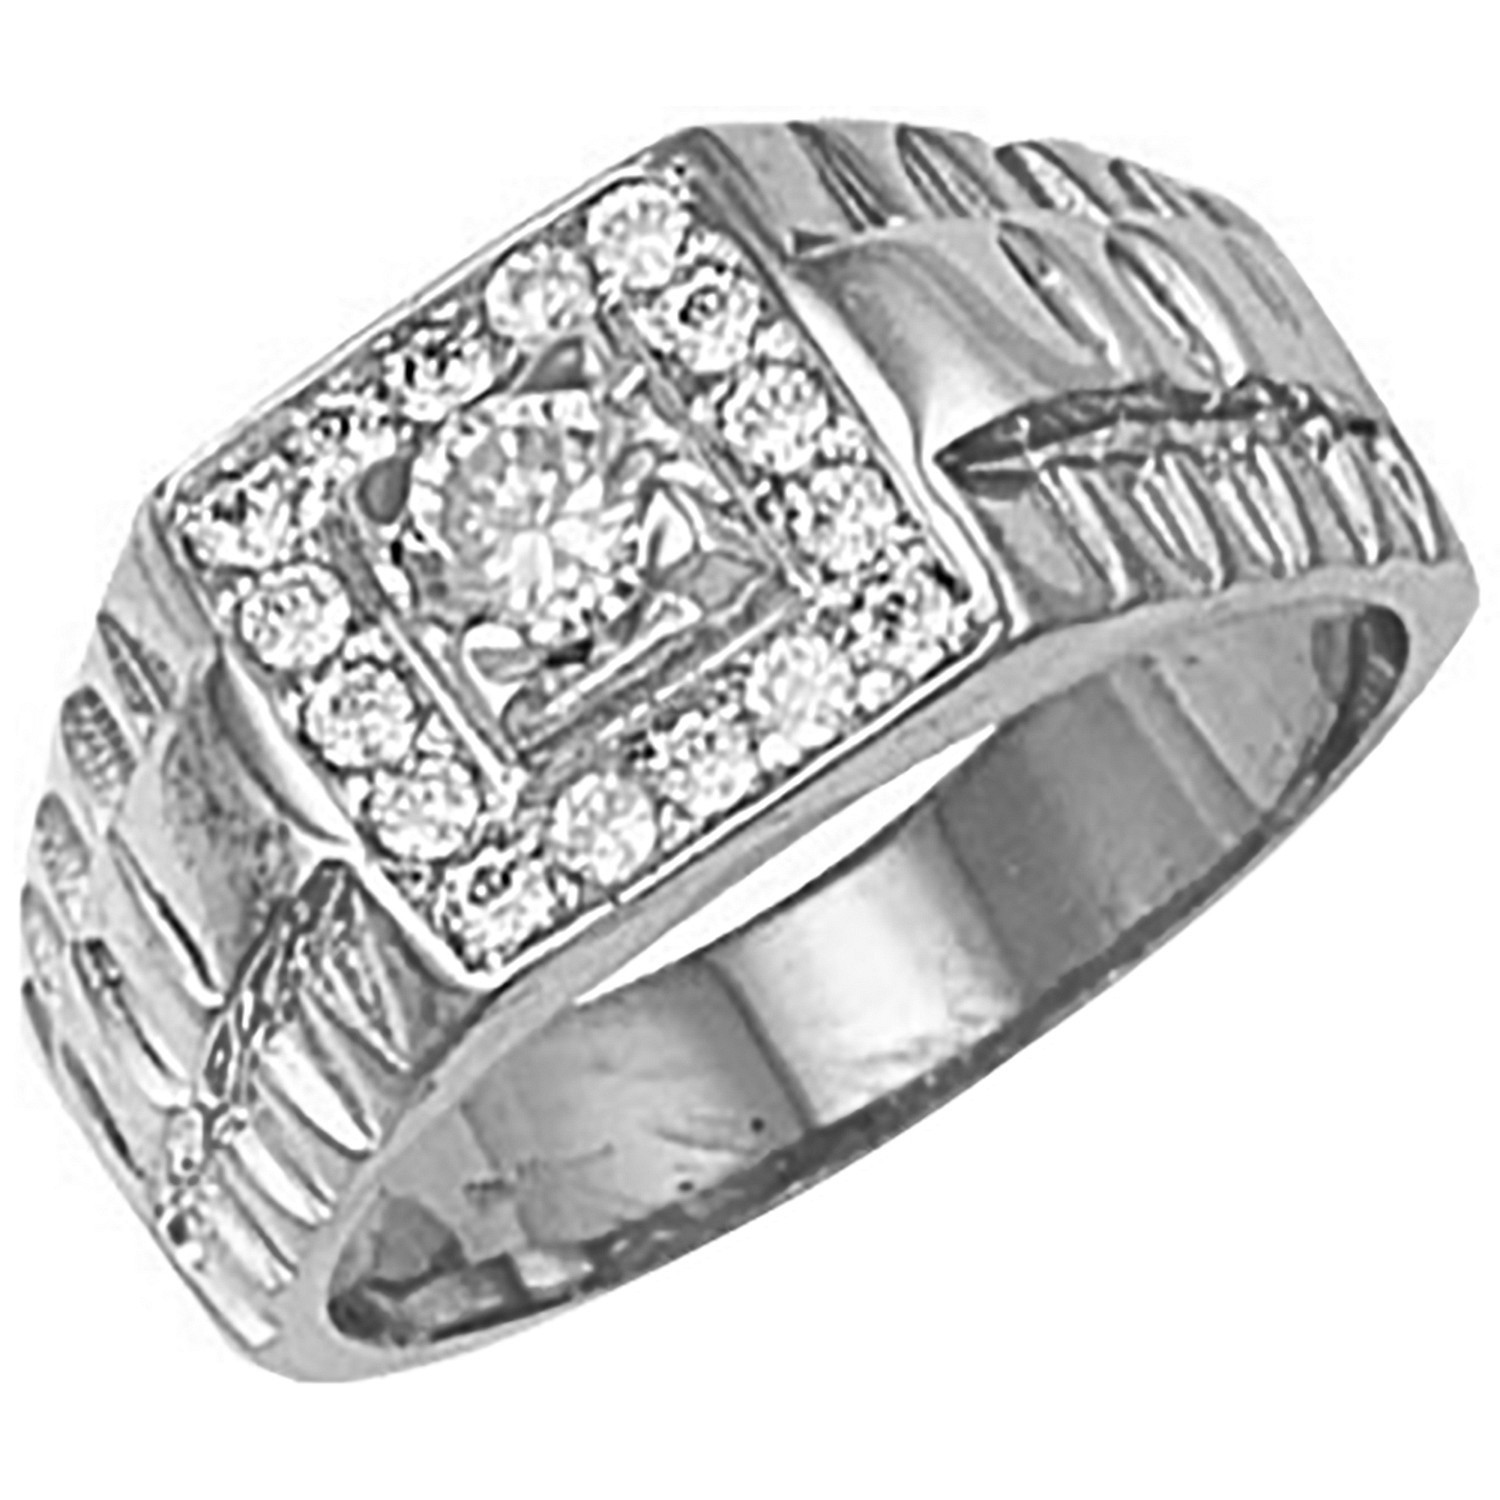 W/G Square Top Gents Cz Ring